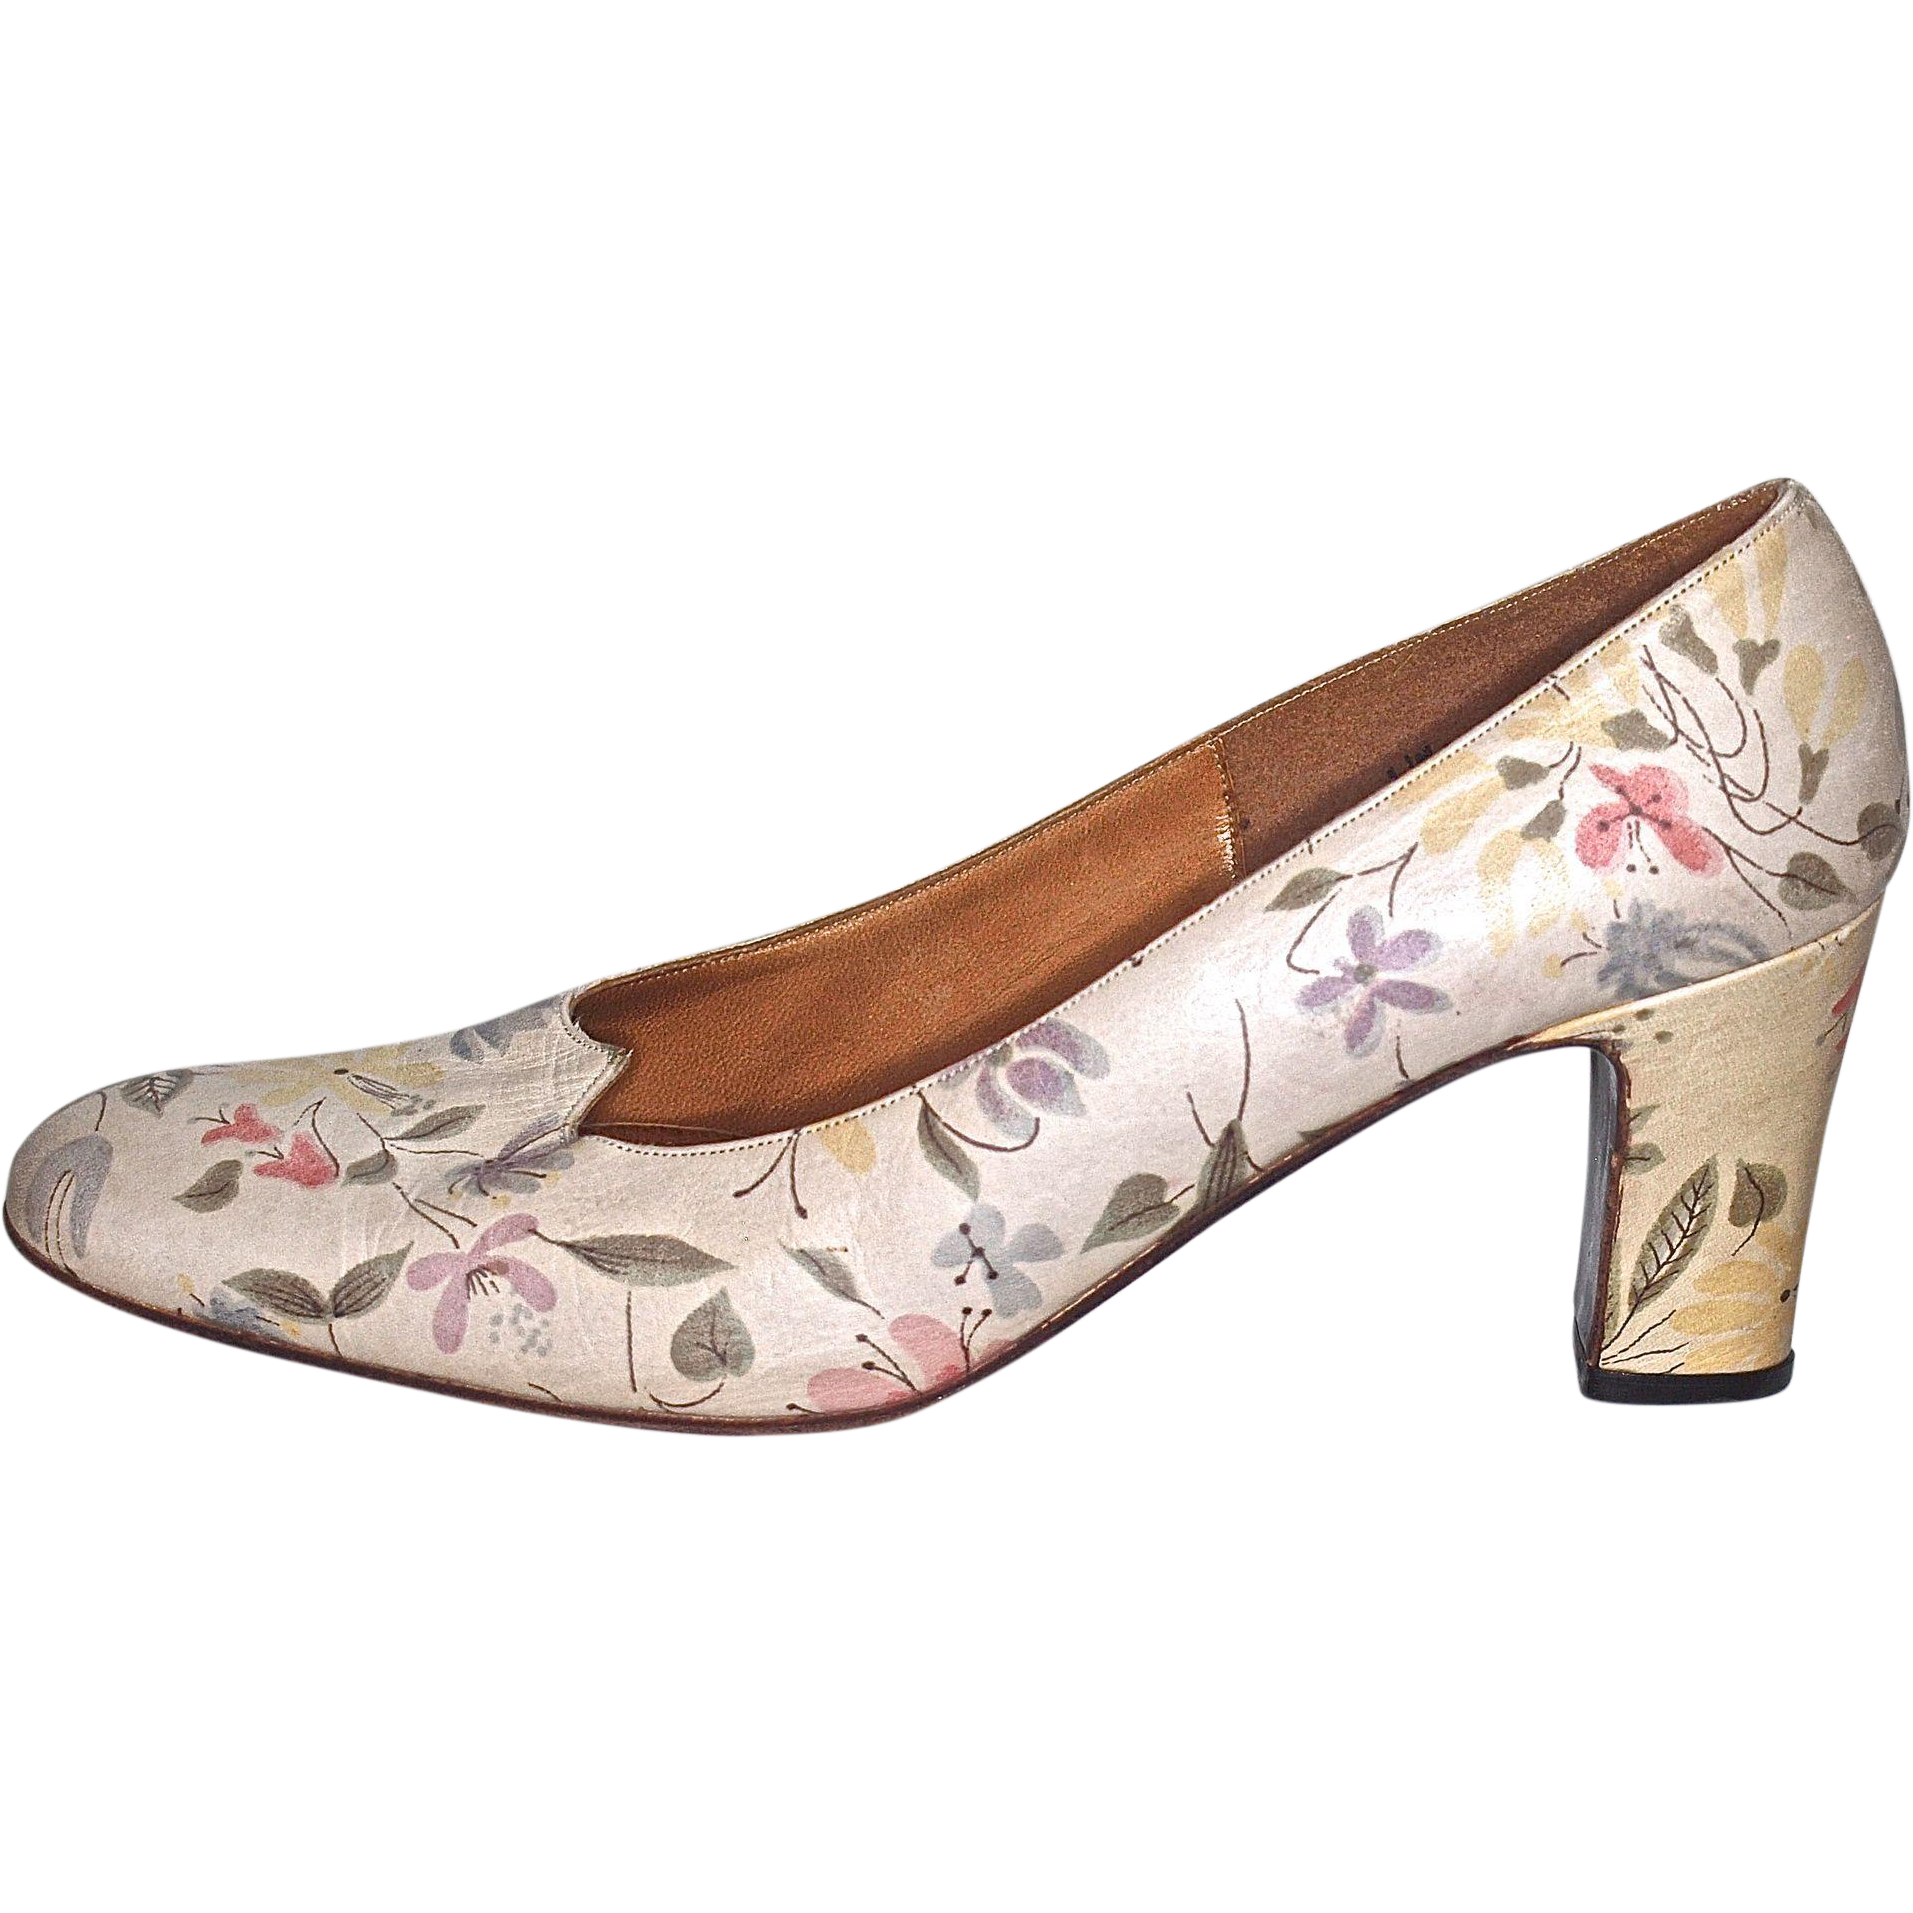 MR. SEYMOUR Floral High-Heel - US Size 6M - Heel Height (Seymour was Stuart Weitzman's Father)